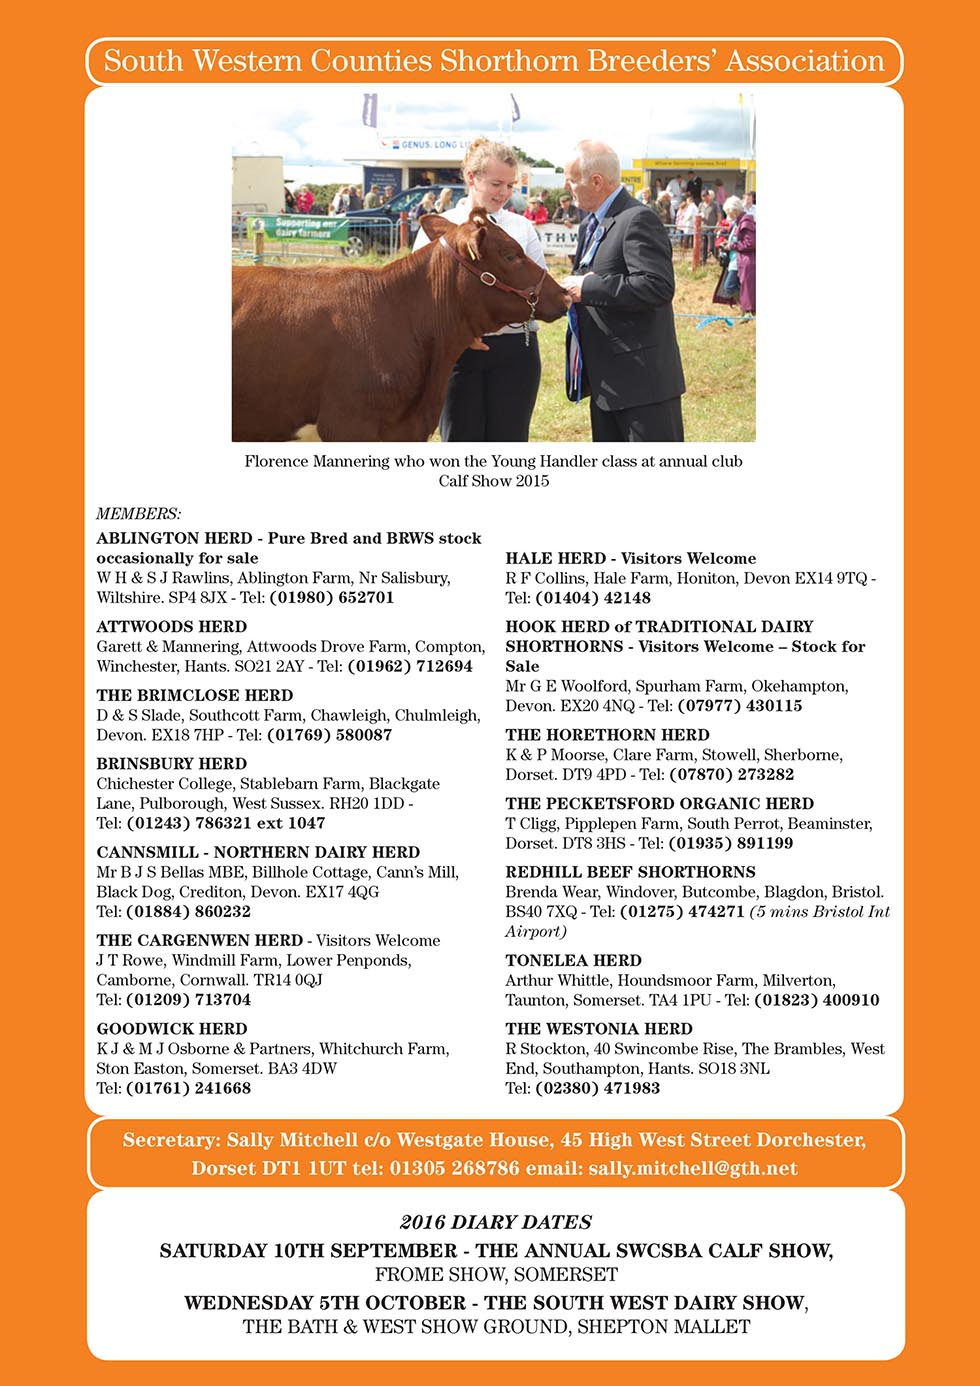 South Western Counties Shorthorn Breeders Association advert